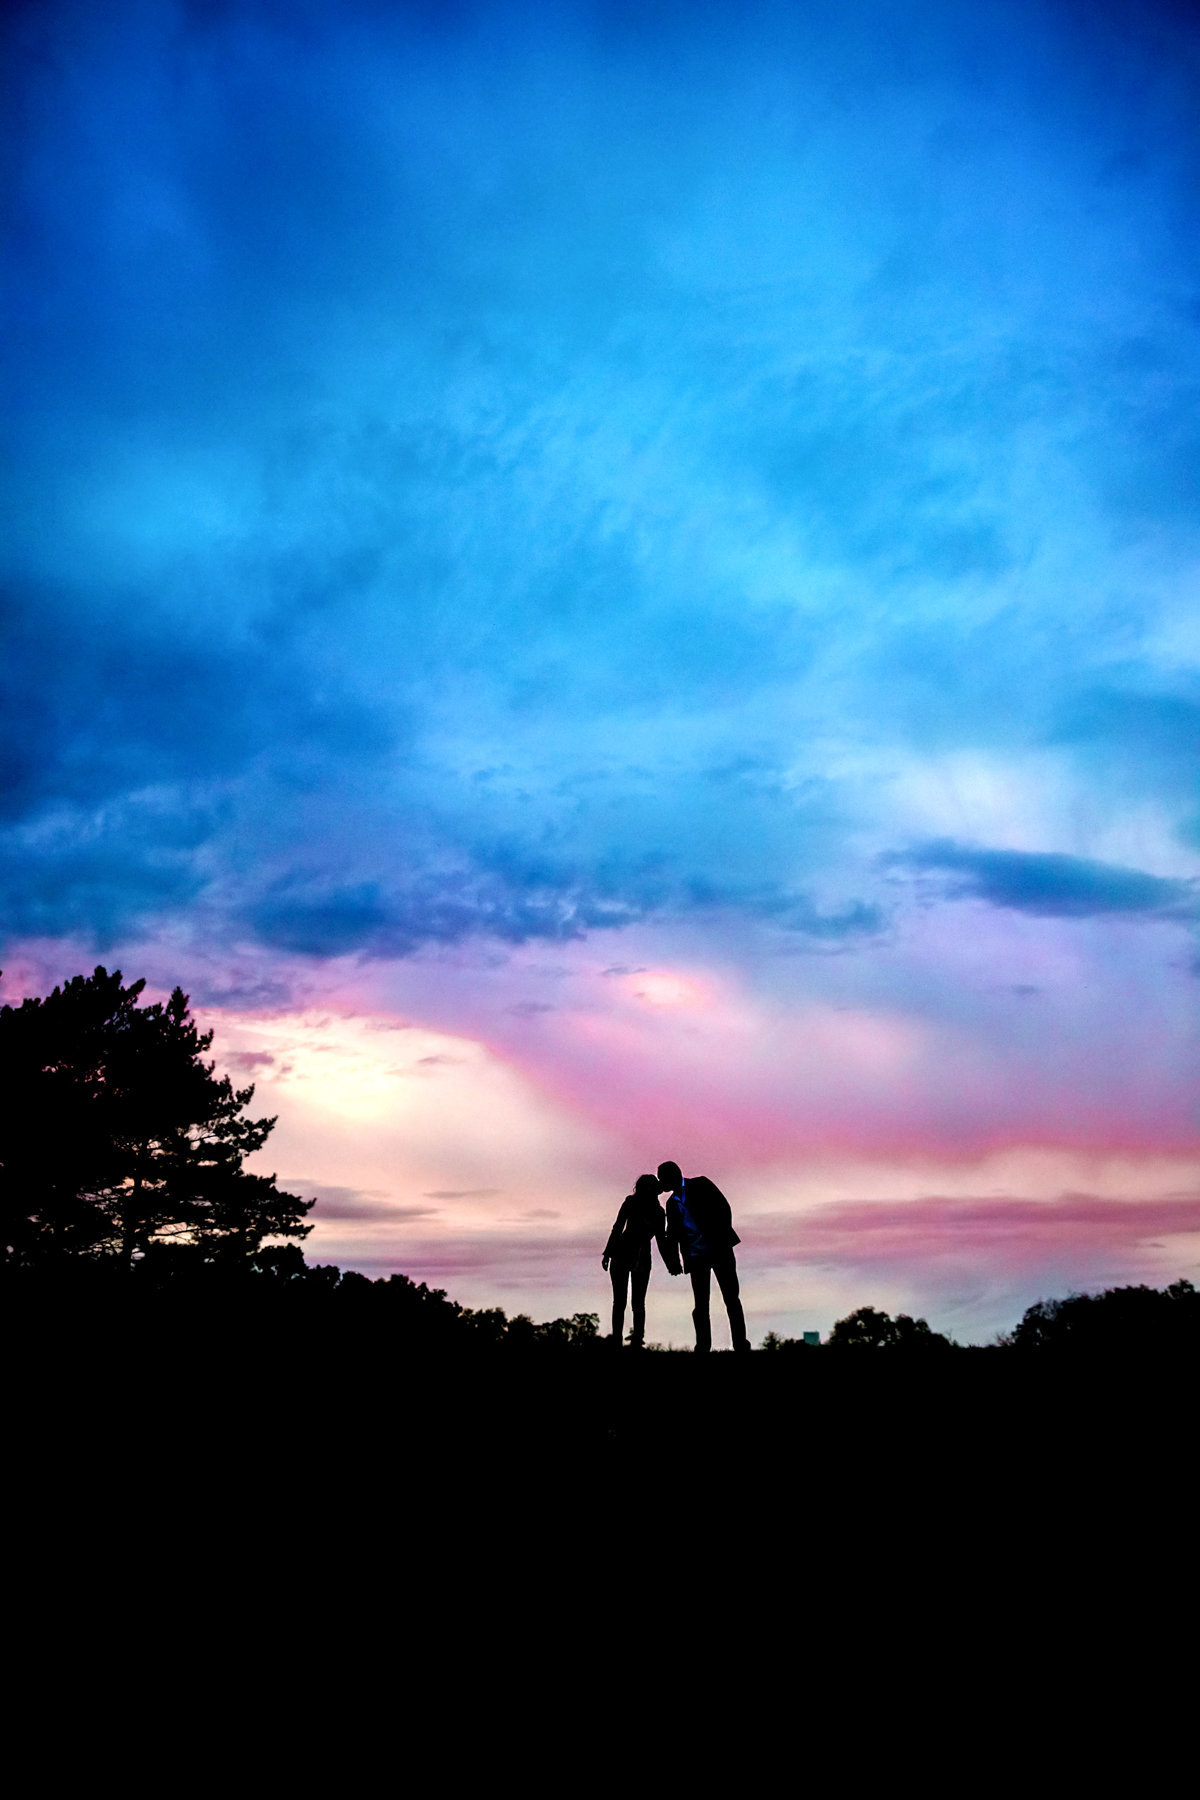 engagement-epic-sky-3